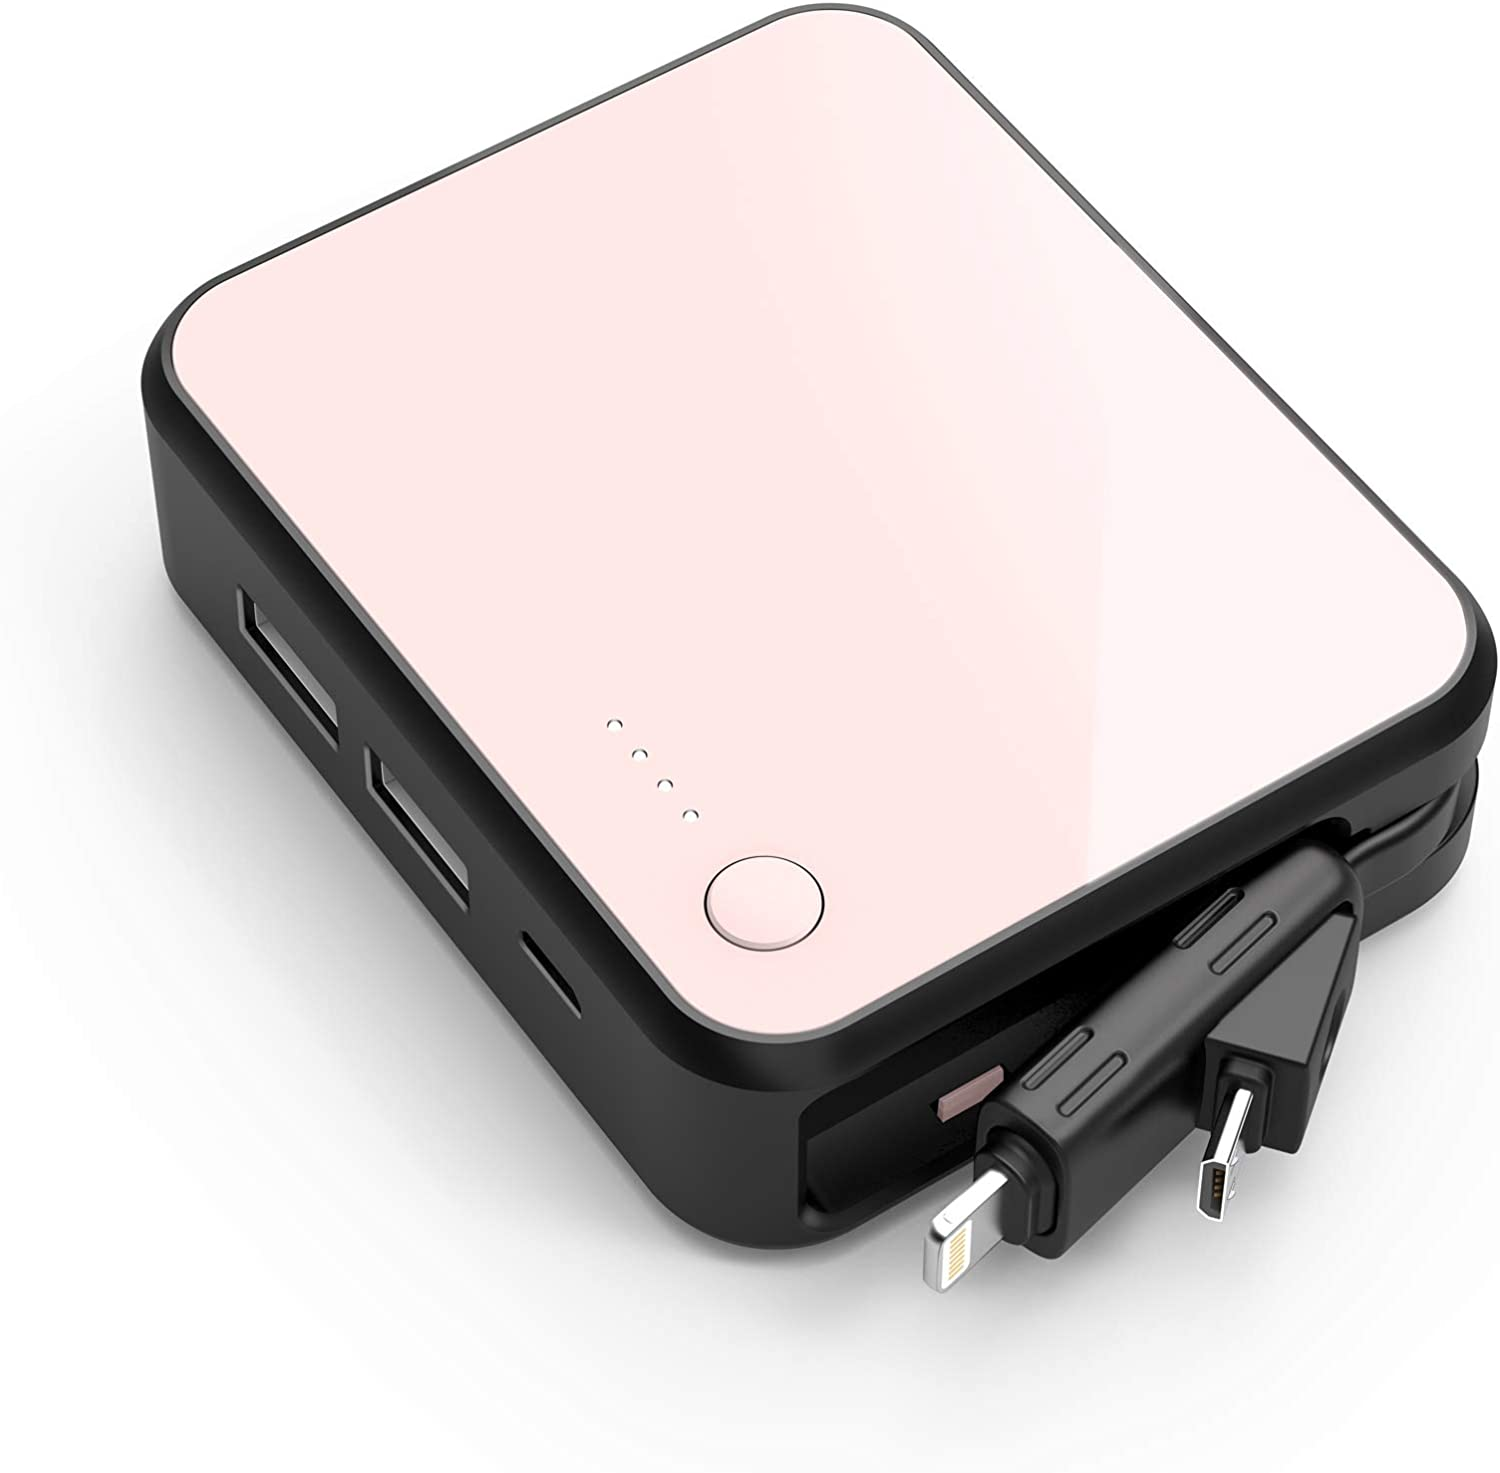 Luxtude Small Portable Charger for iPhone with Lightning Cable, 6000mAh Ultra-Compact Power Bank, Dual USB Outputs External Battery Charger for iPhone 12 Mini/12 Pro/11/11 Pro/8 Plus/8/7/6/6S/XR etc.